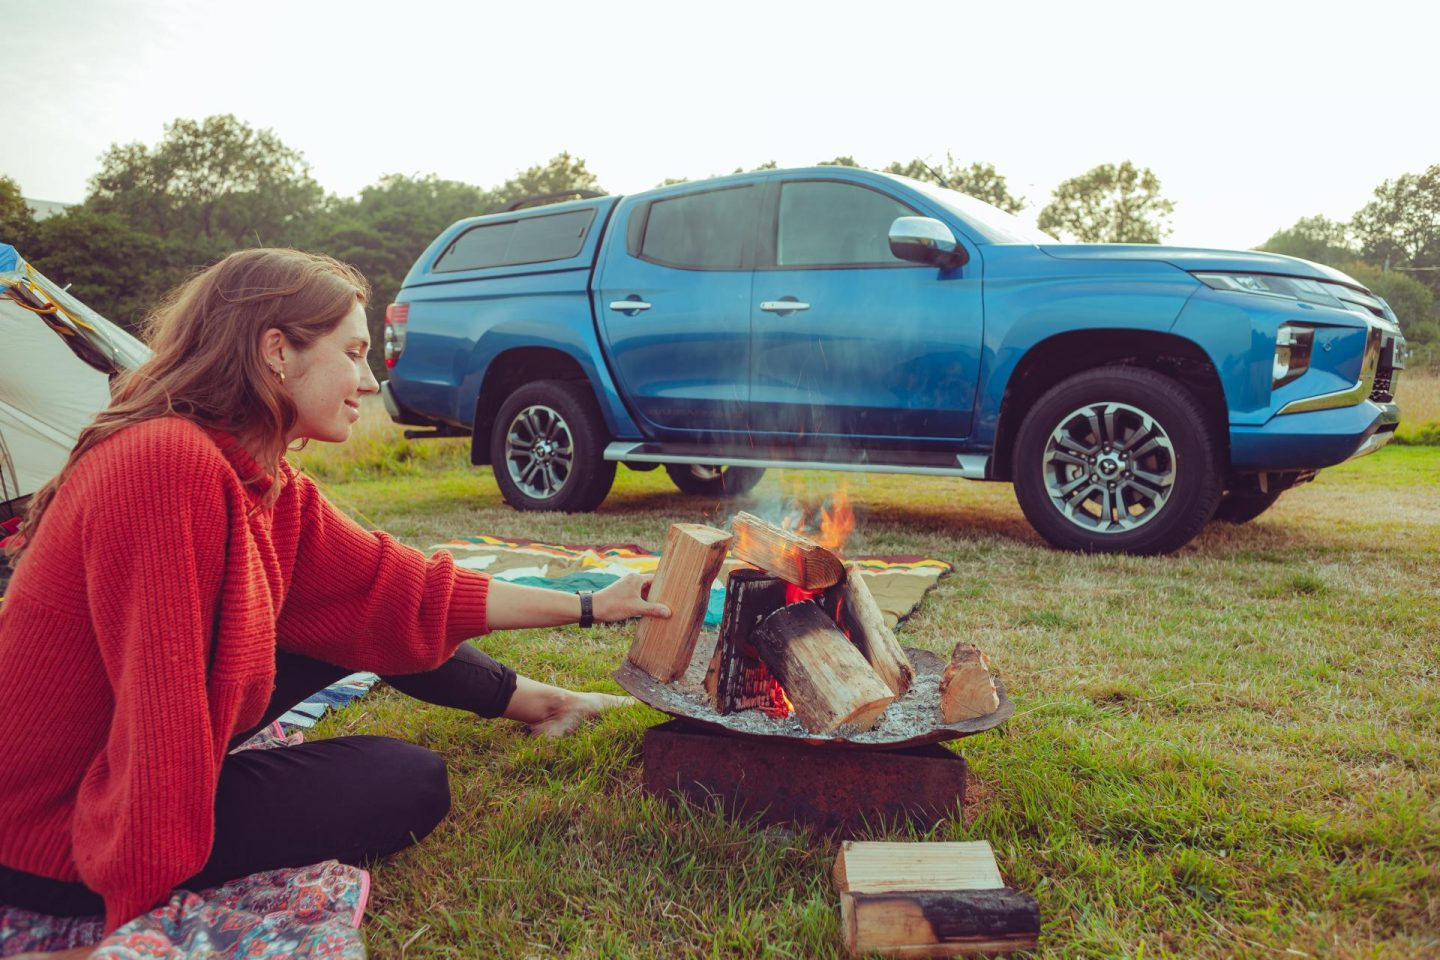 Top tips for wilder camping